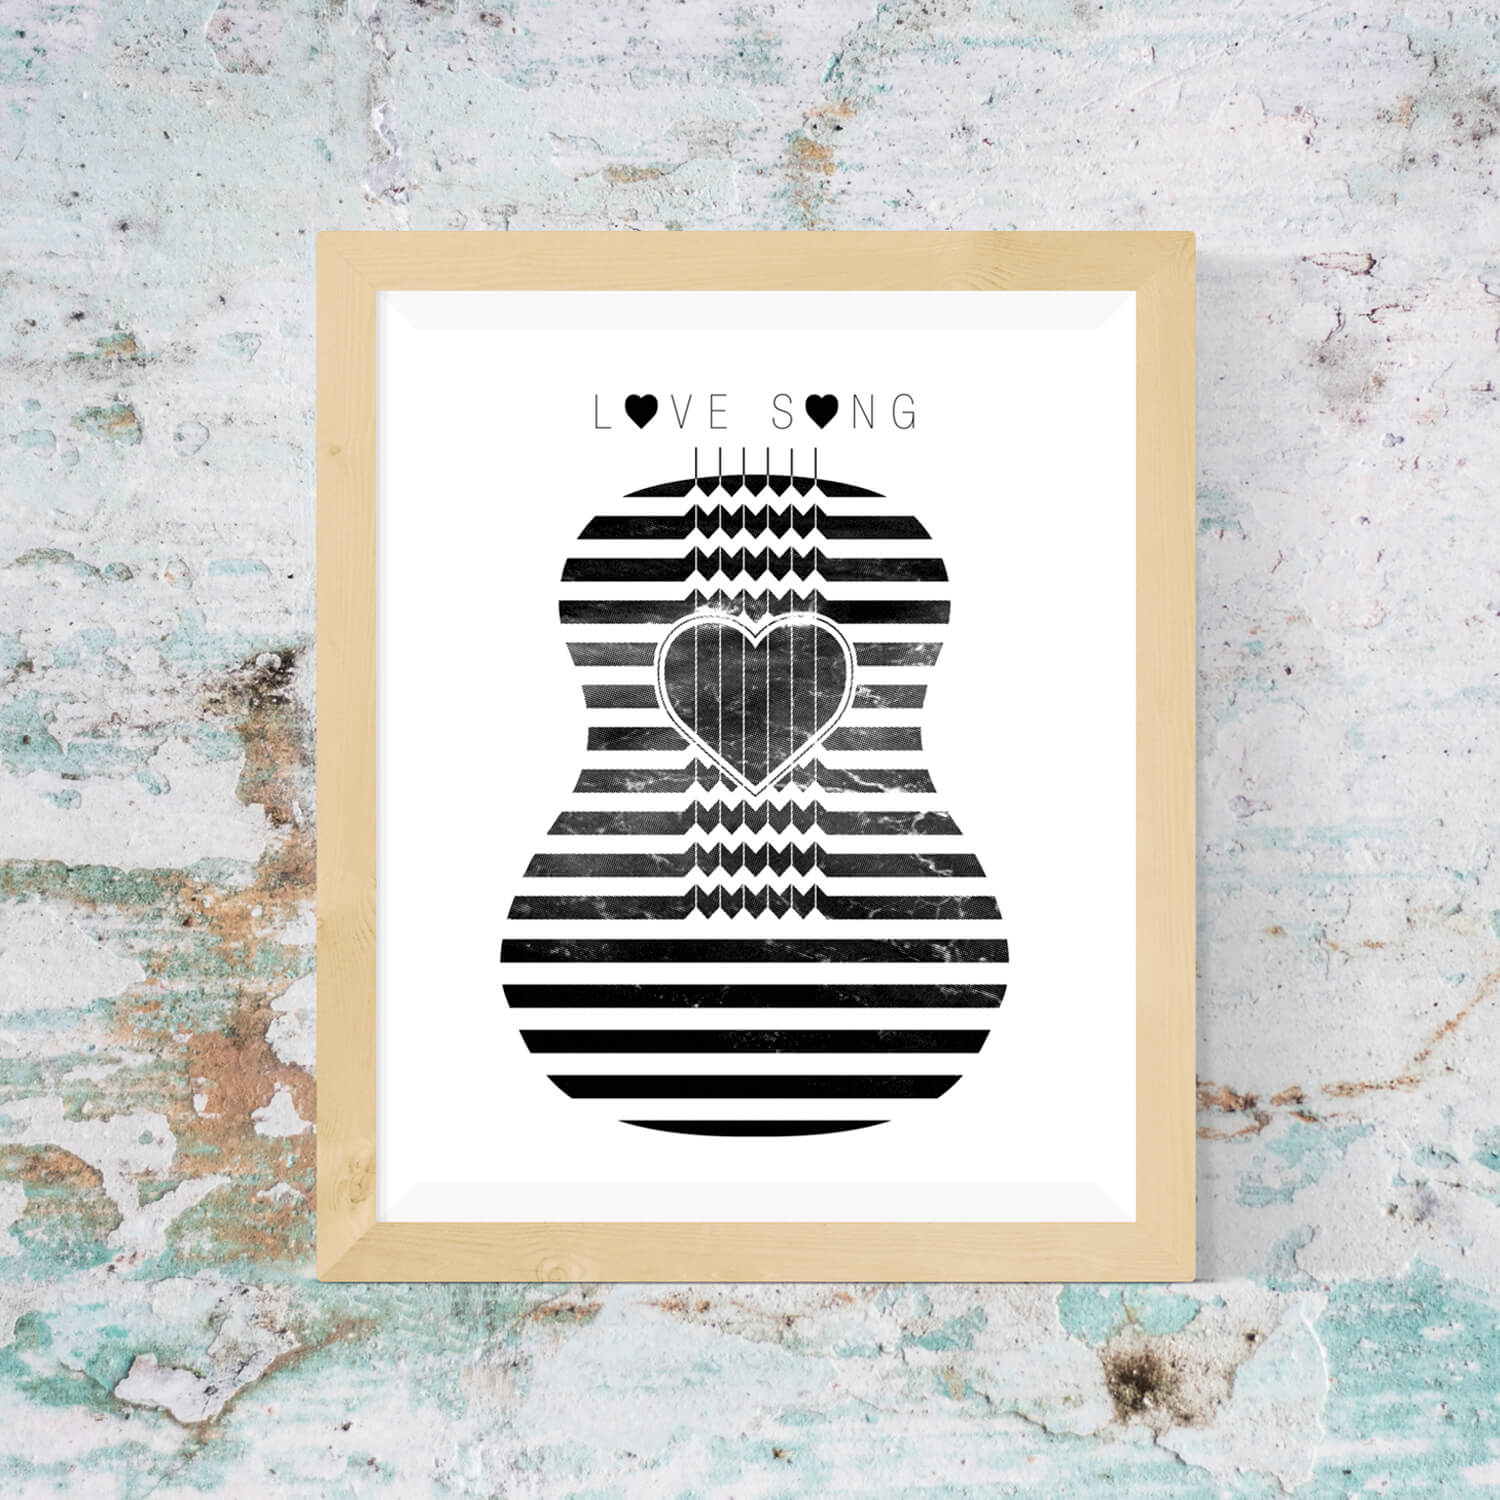 Love Song Print - Vision City Design Studio